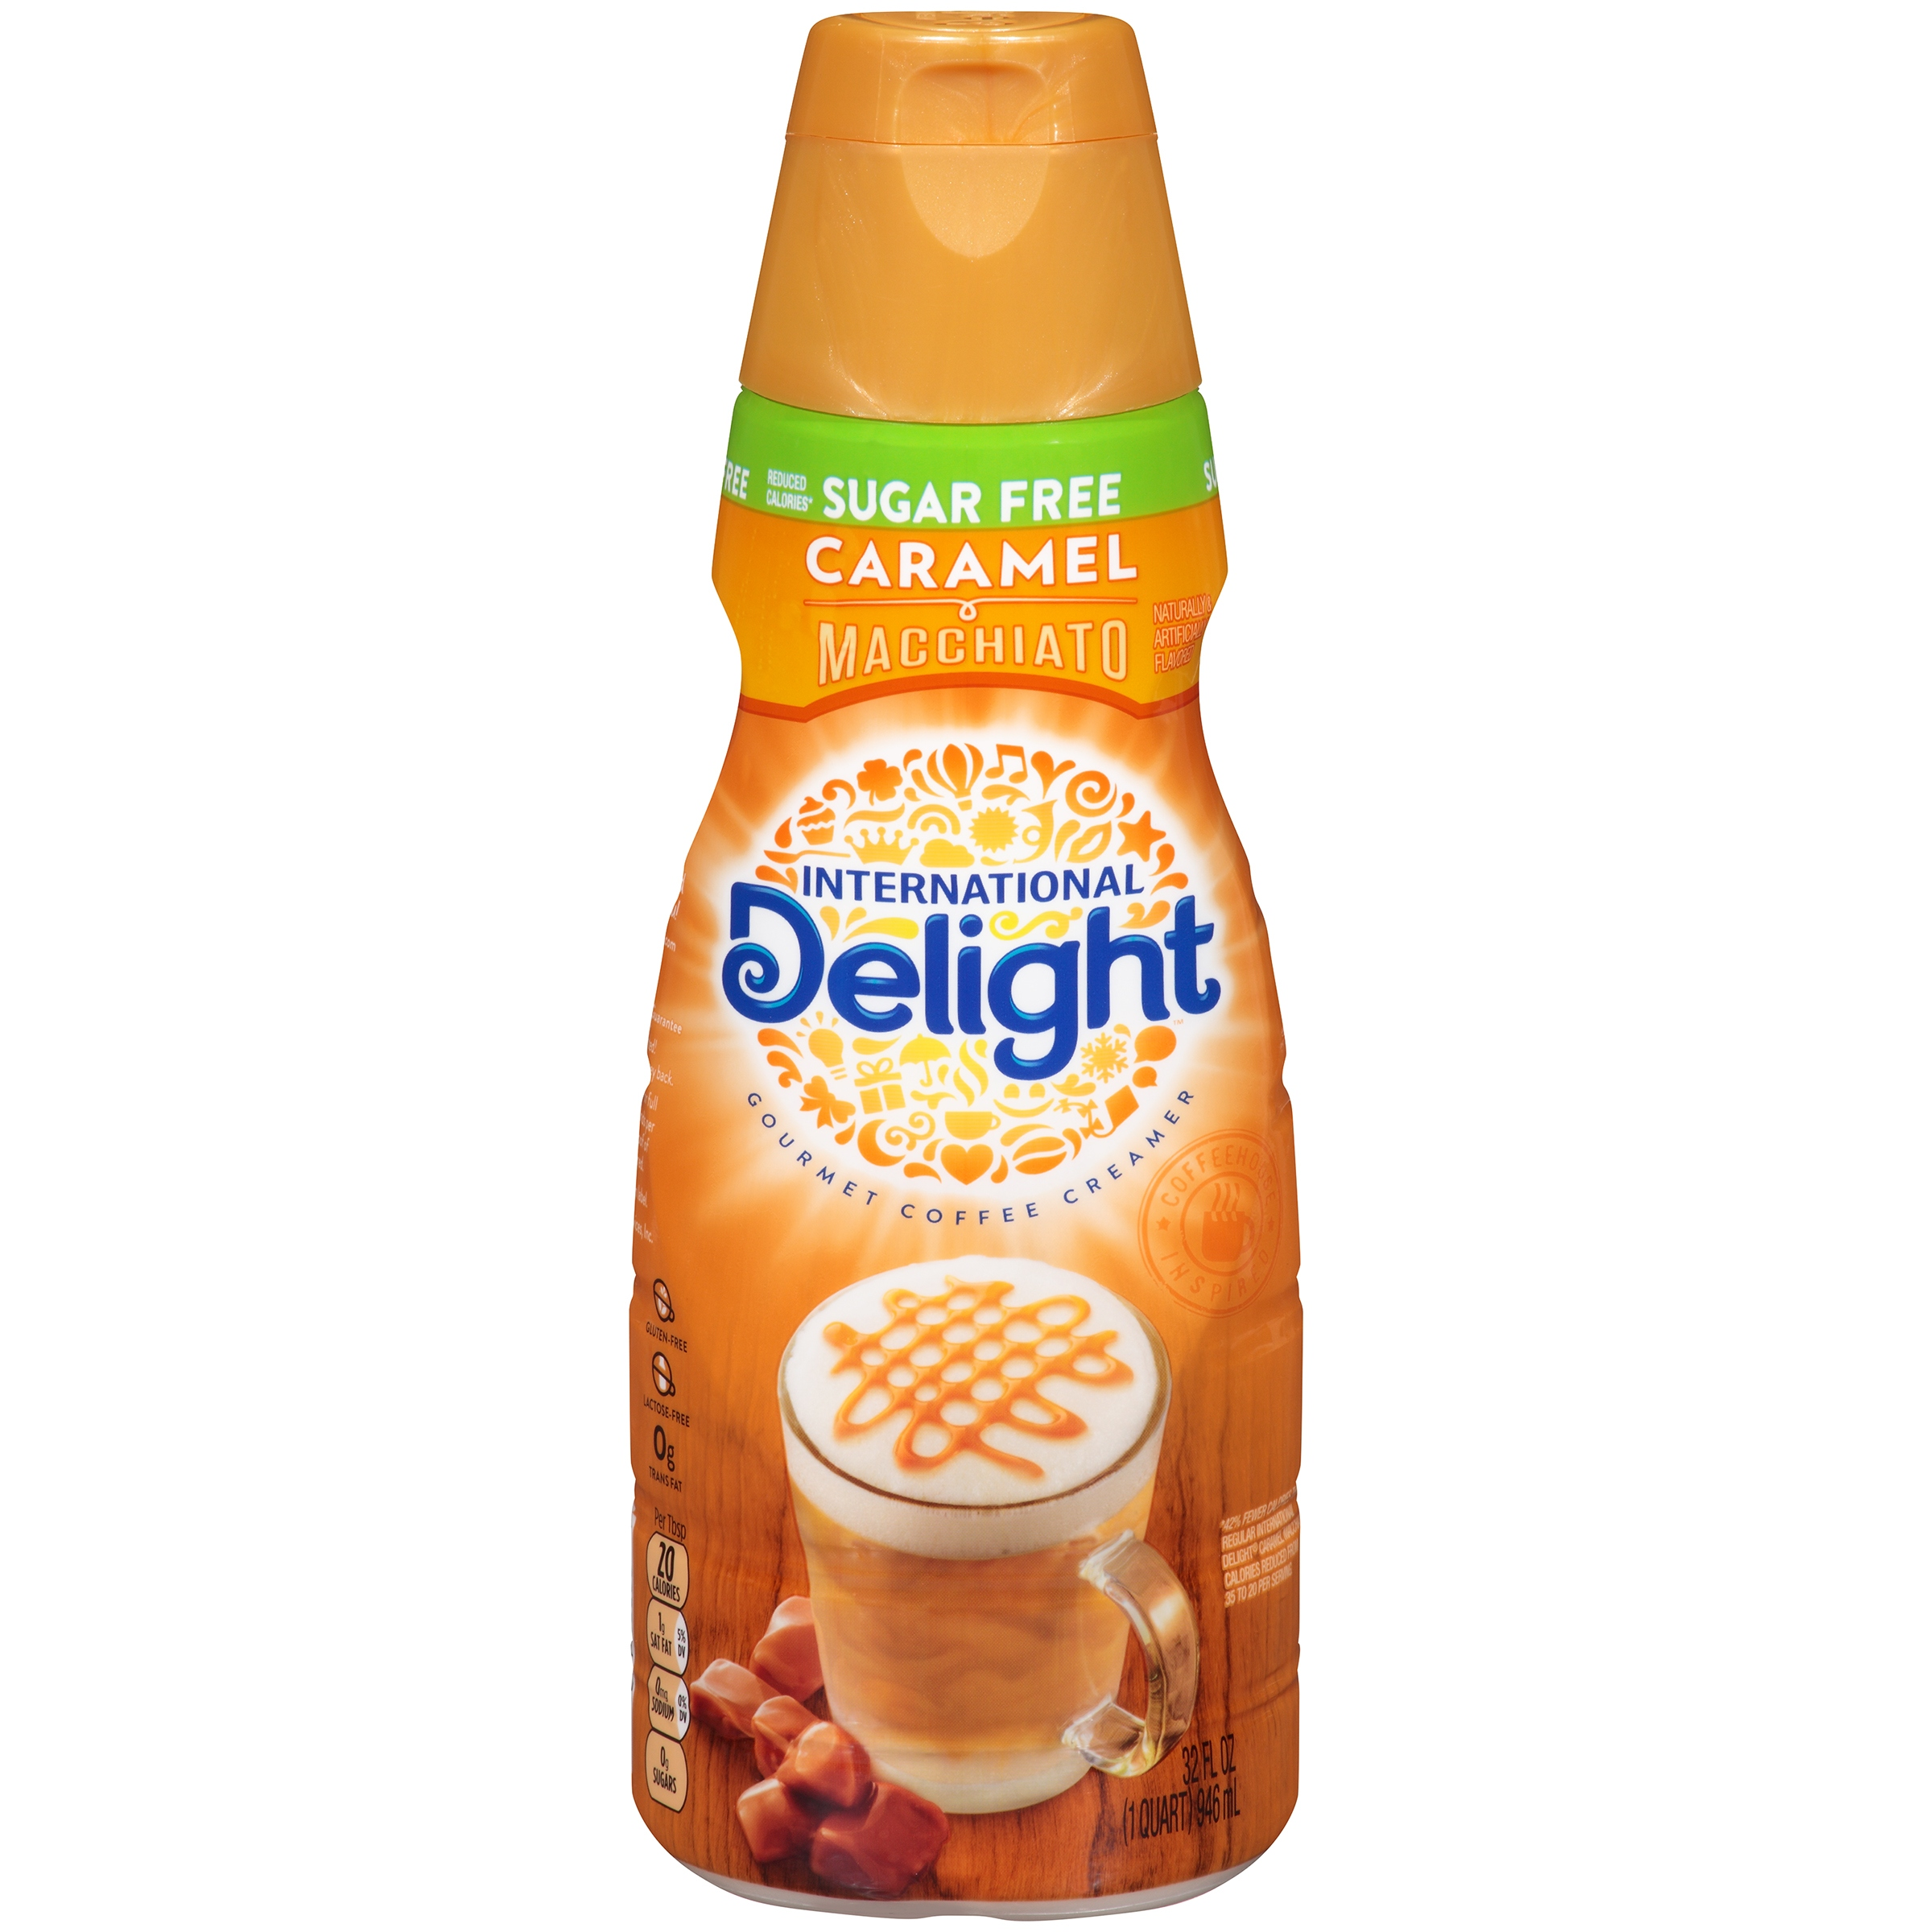 International Delight, French Vanilla, Single-Serve Coffee Creamers, Count, Shelf Stable Non-Dairy Flavored Coffee Creamer, Great for Home Use, Offices, Parties or Group Events by International .